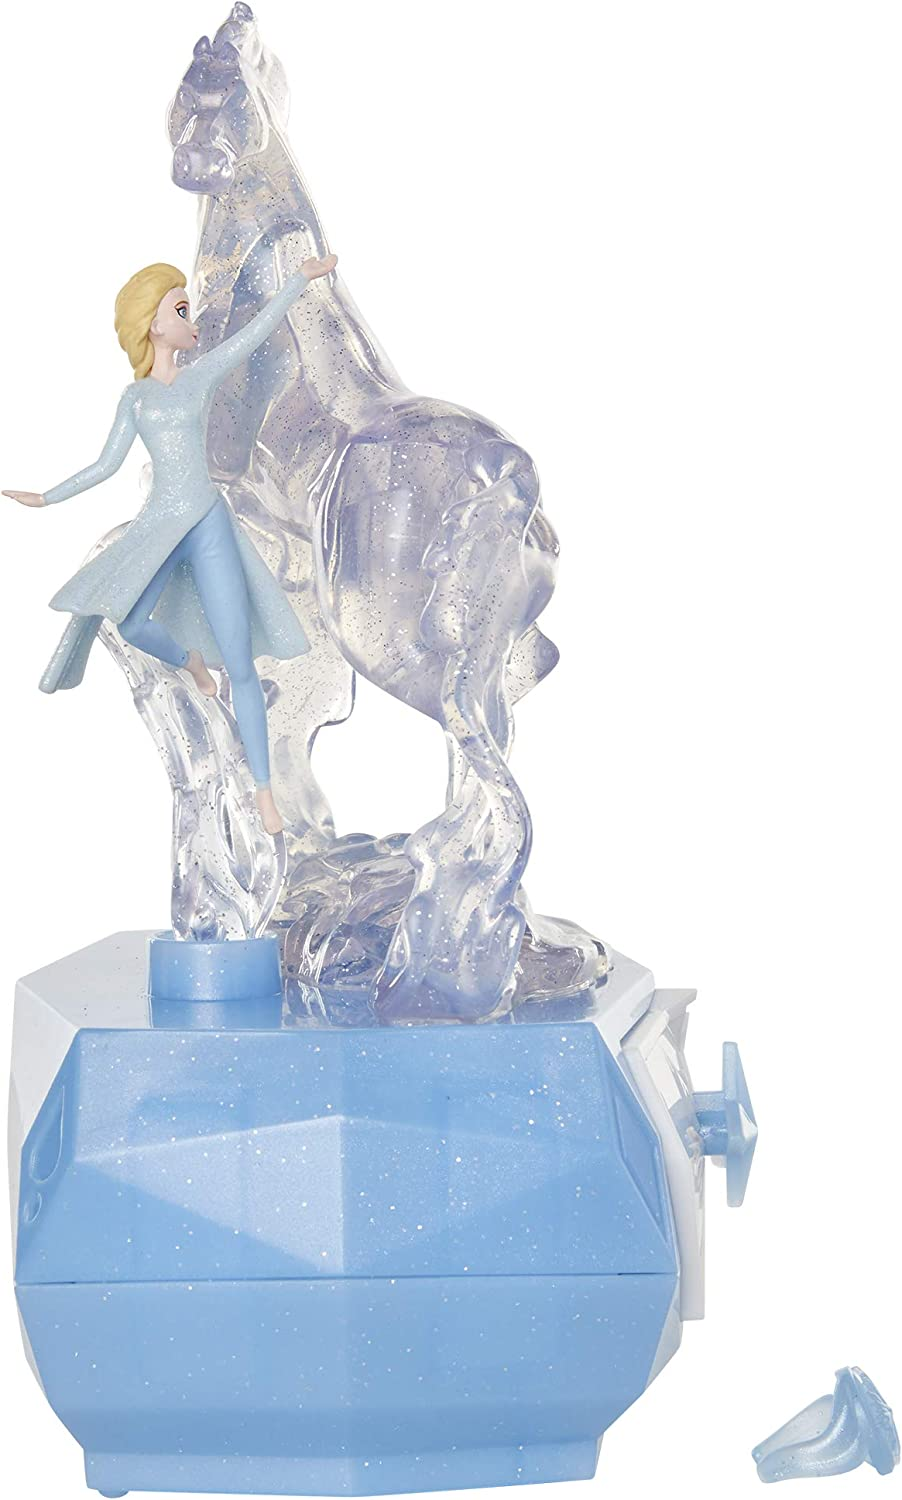 "Disney Frozen 2 Elsa & Water Nokk Jewelry Box with Snowflake Ring, Color Changing Light, Plays ""Into The Unknown"": Toys & Games"